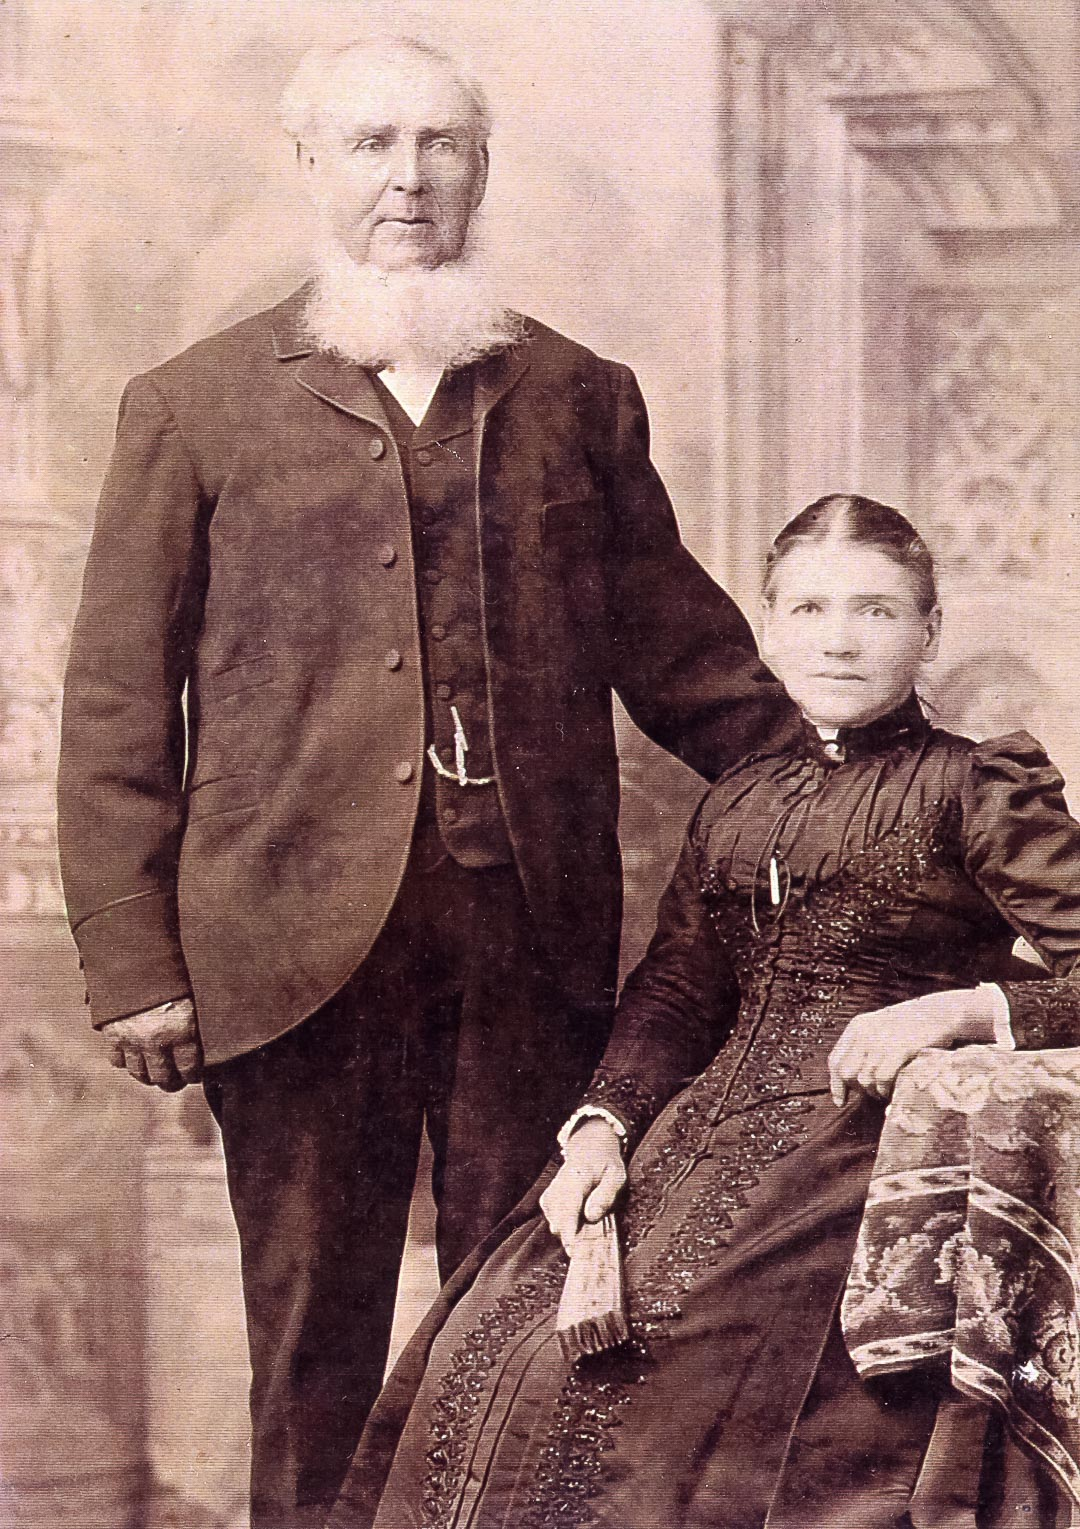 John Ryder, on the occasion of his second marriage, and Rachel Ryder (nee Smith) 1895